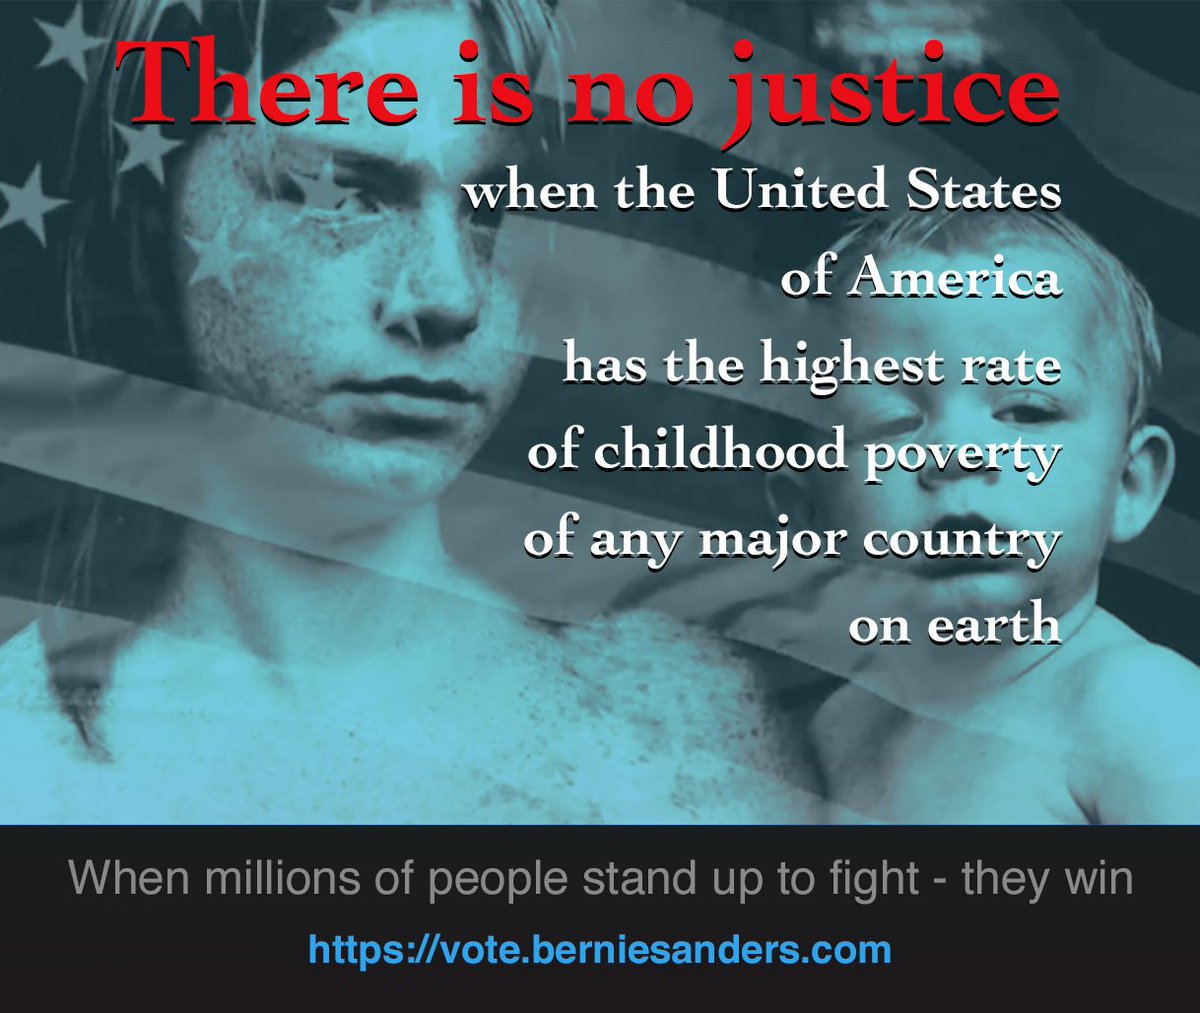 There is no justice when so few have so much and so many have so little https://t.co/BwtX59FPF0 #NewYork #Wisconsin https://t.co/56gMqFrRZW